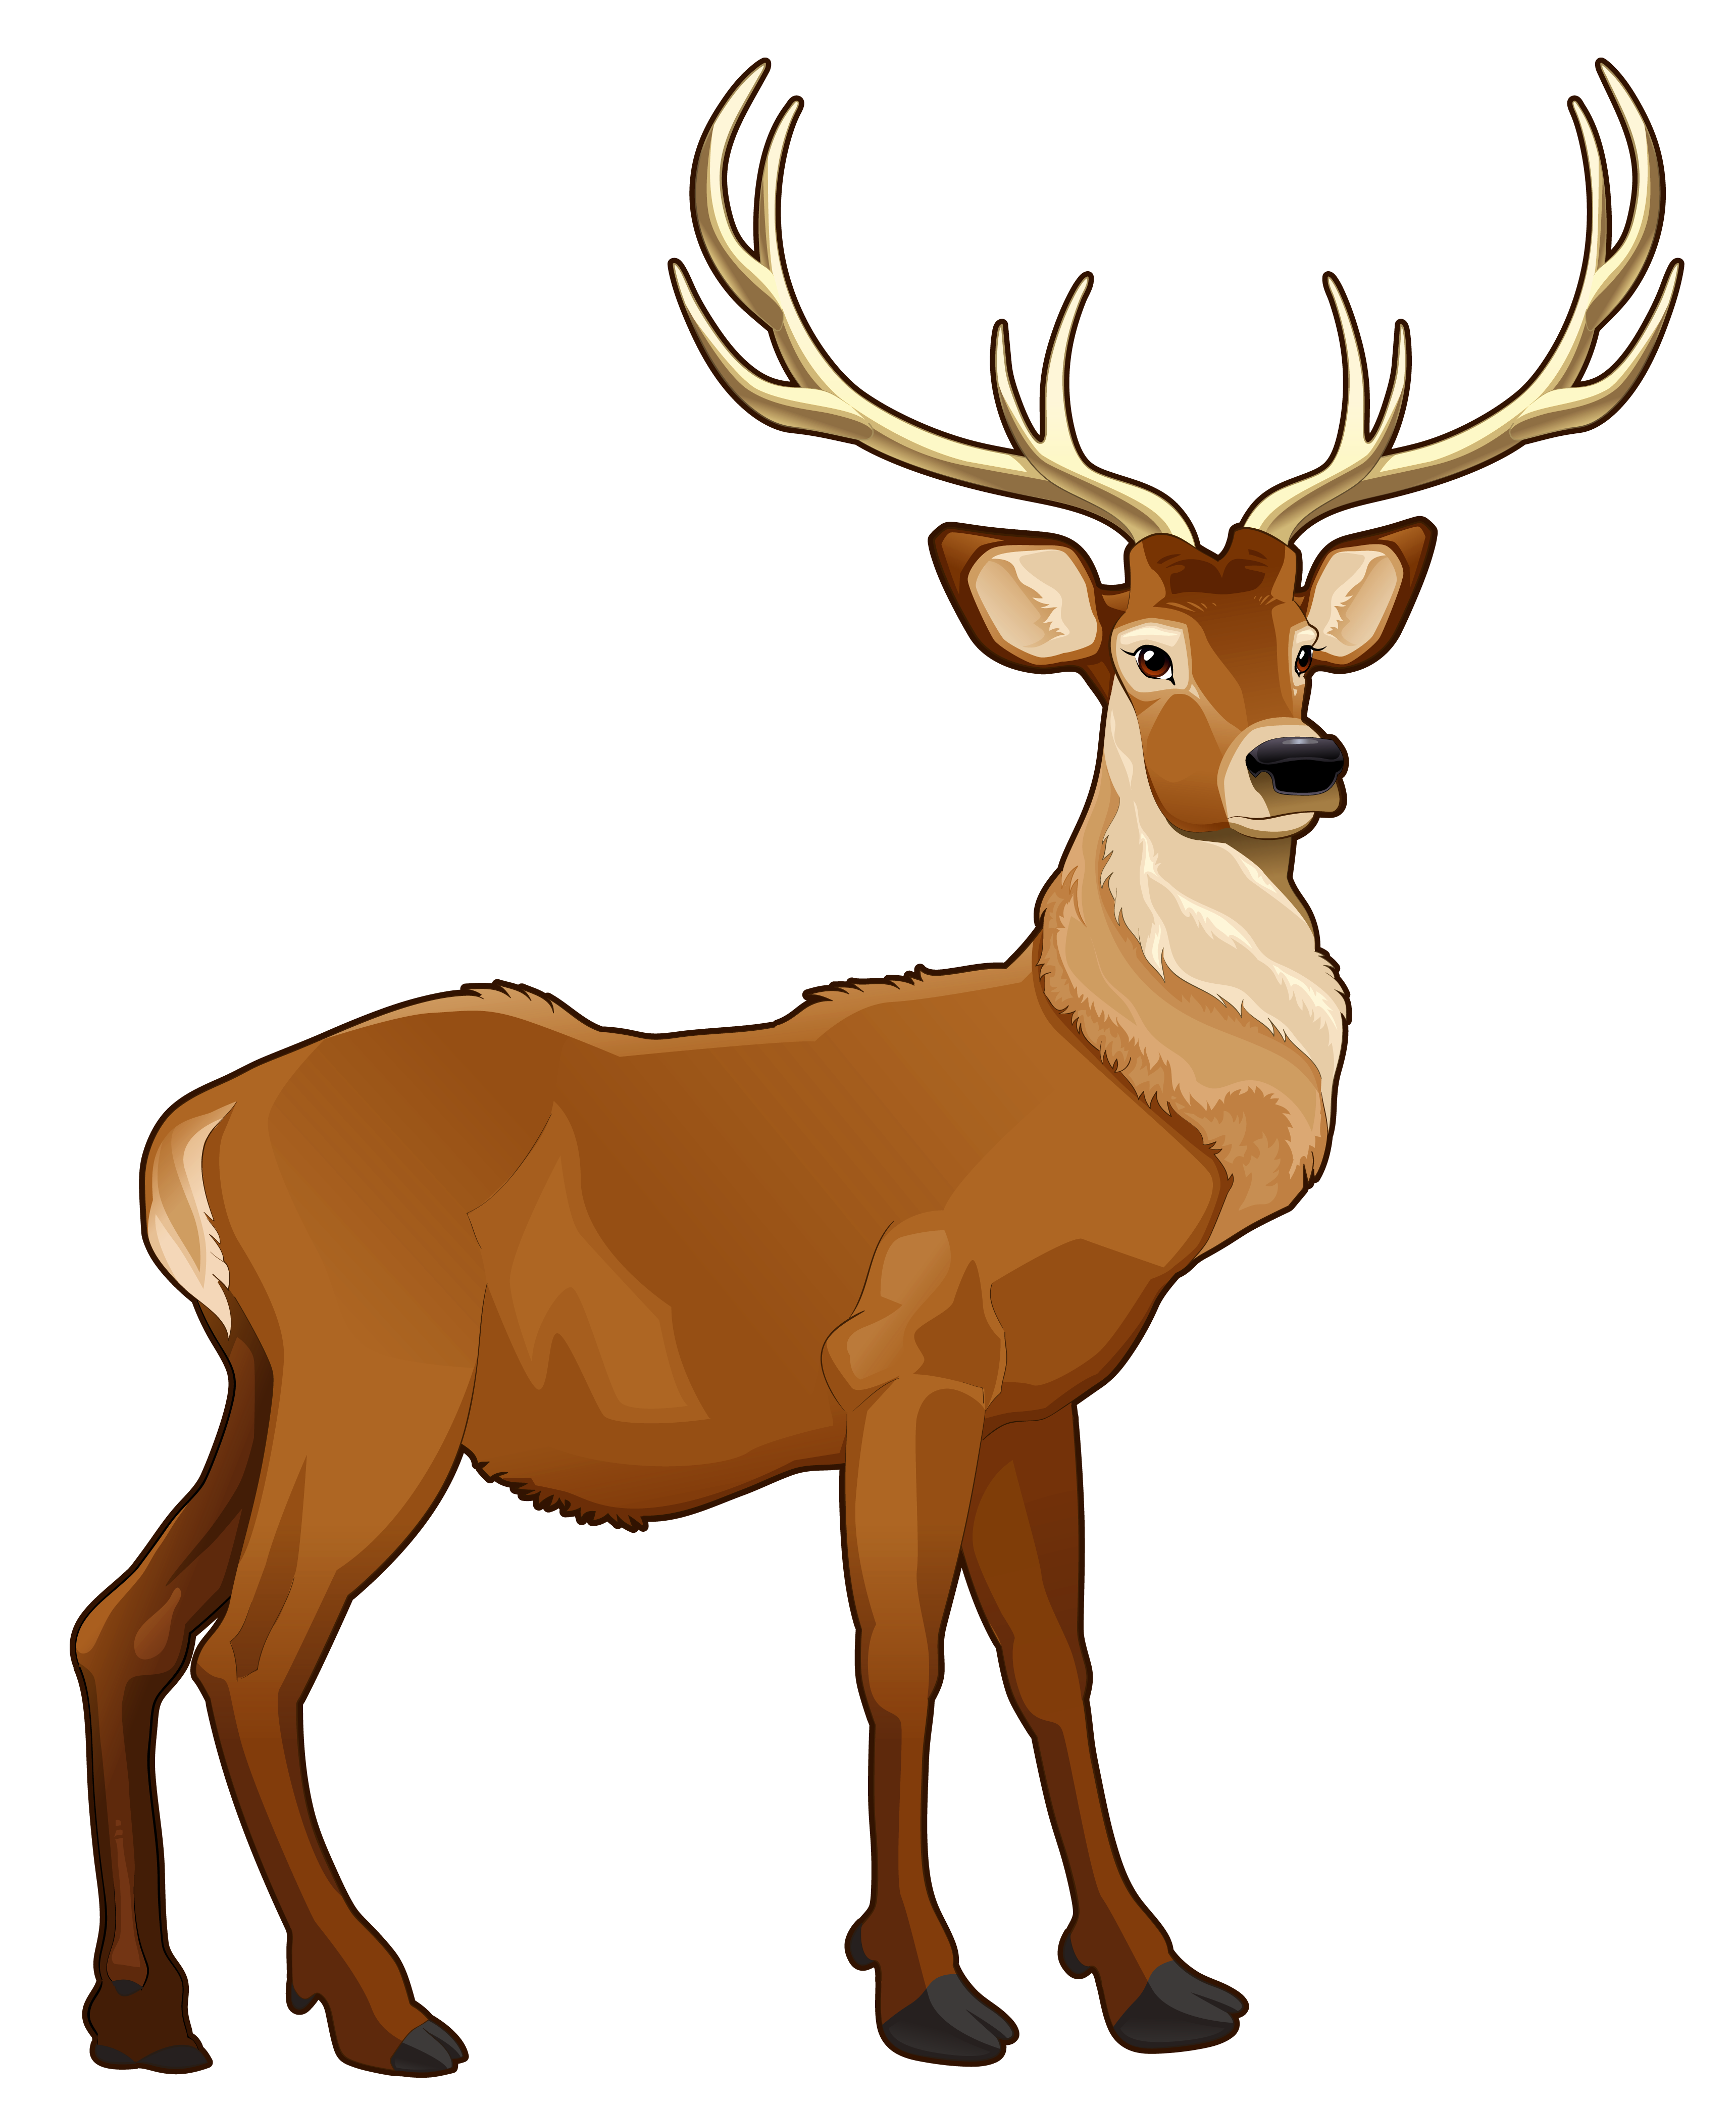 Png reindeer antlers. Brown clipart picture animals